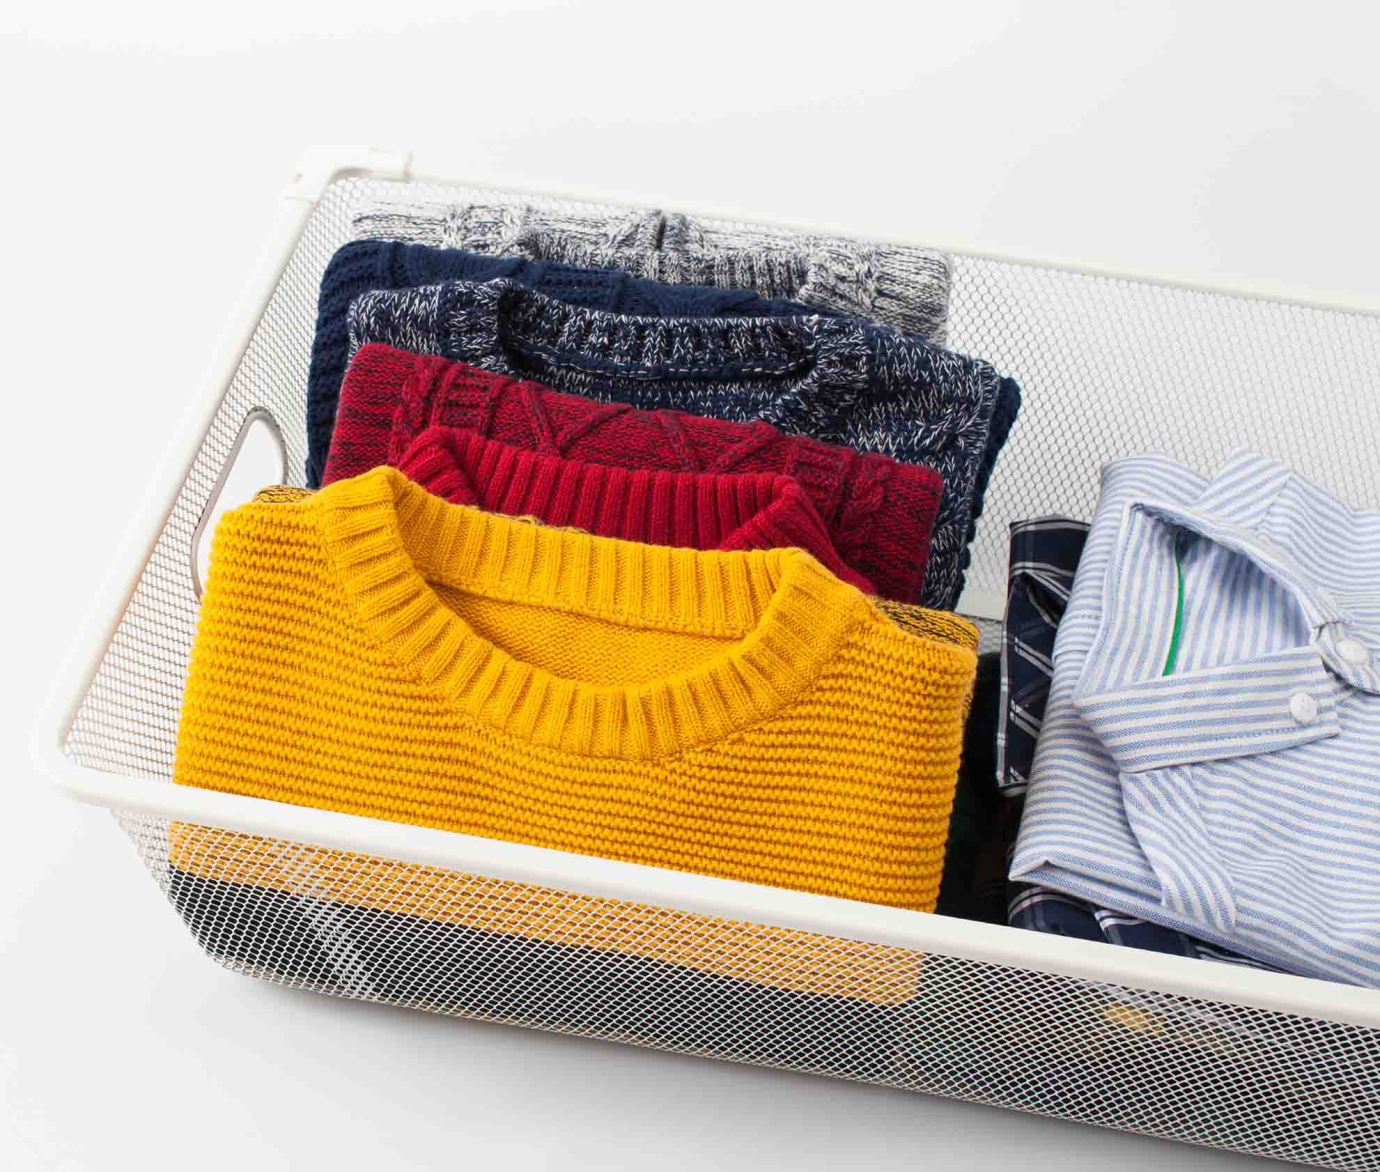 purge clothes to donate during the pandemic